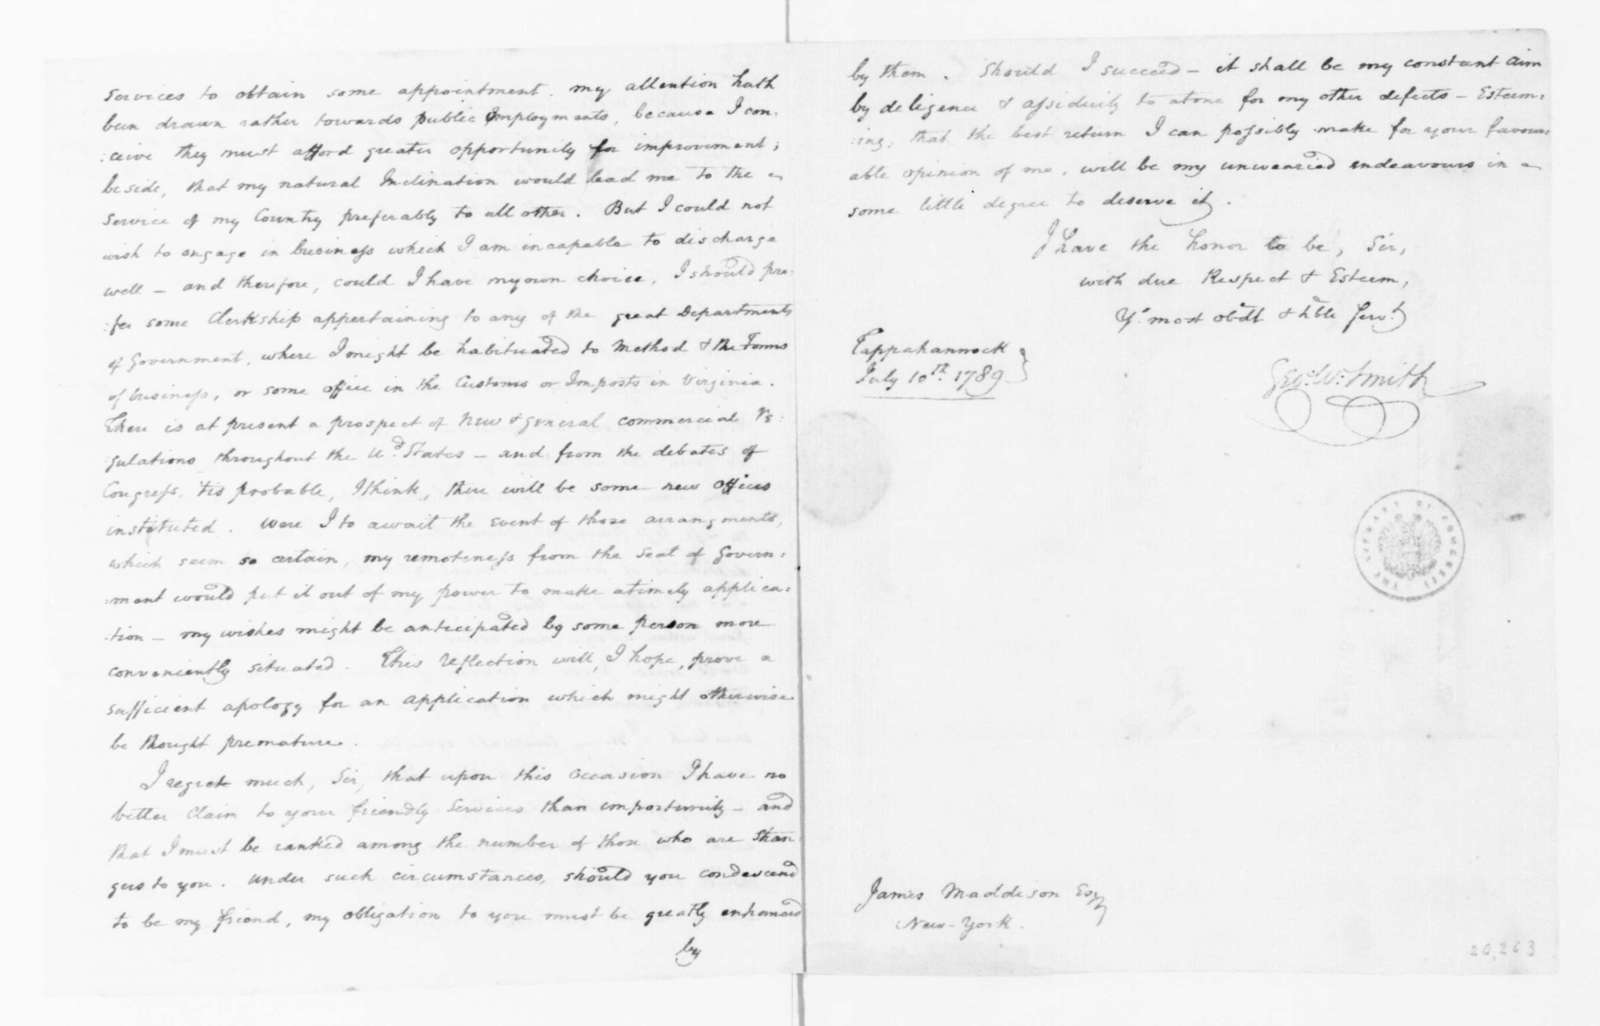 George W. Smith to James Madison, July 10, 1789.